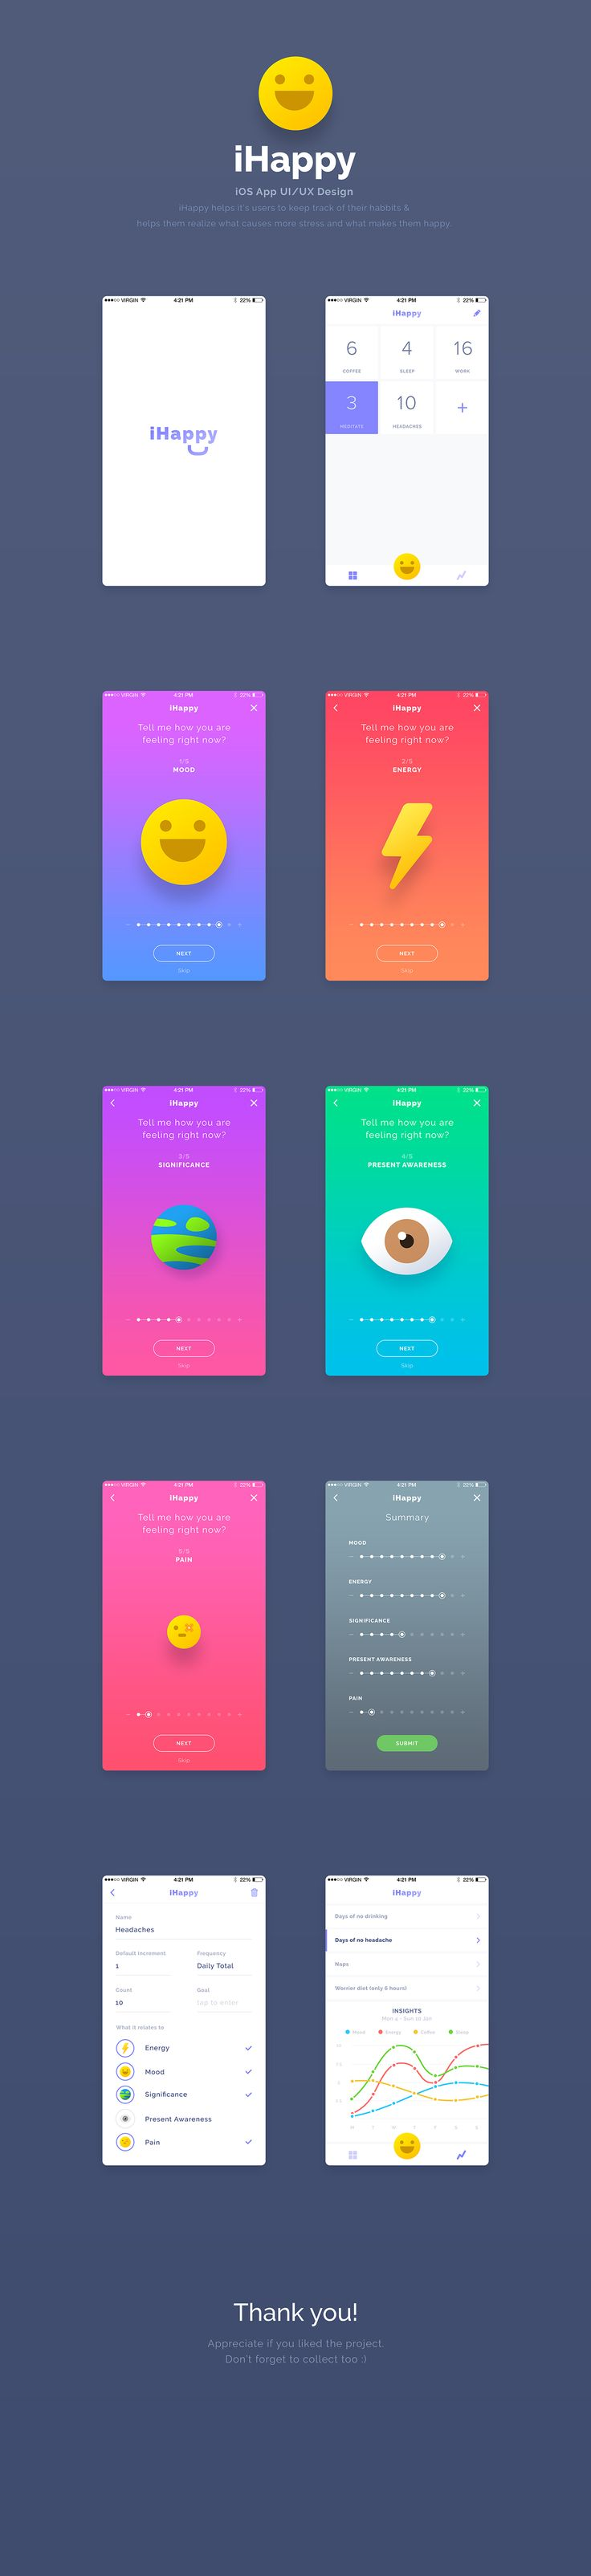 ihappy ios app uiux design on behance - Ui Design Ideas